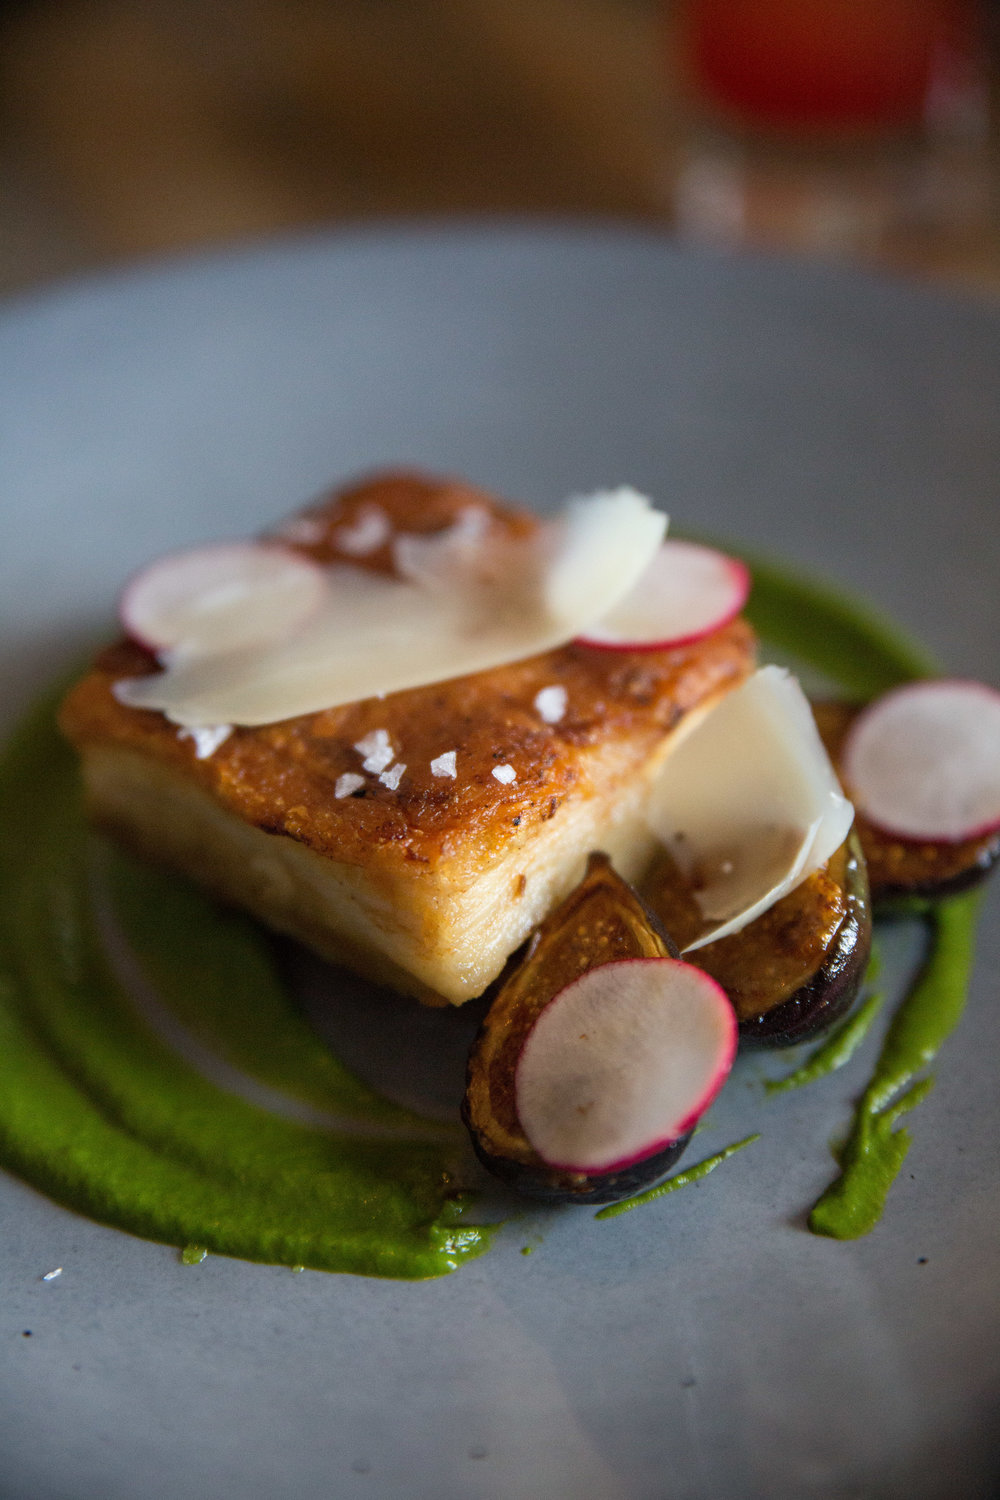 Long Islander News photos/Craig D'Andrea       The Olive Oil Braised Pork Belly was a decadent, yet balanced treat, served alongside warm roasted black mission figs, aged provolone, broccoli rabe and pink peppercorn honey.